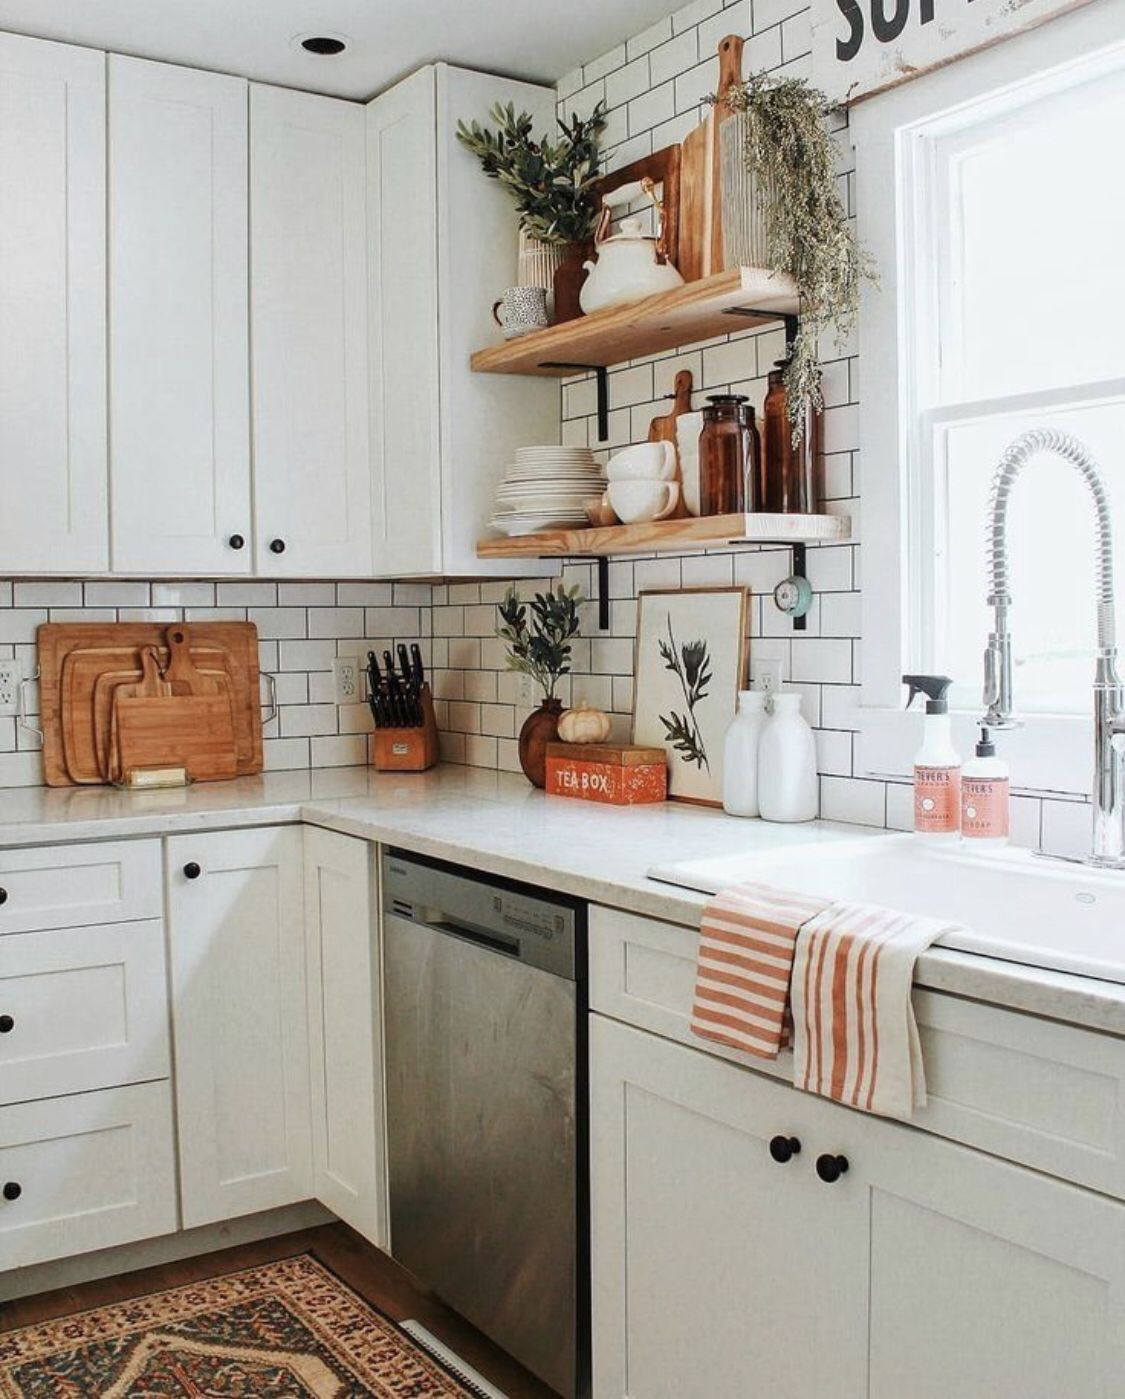 Shop Home Decor Target Home Kitchens Kitchen Inspirations Home